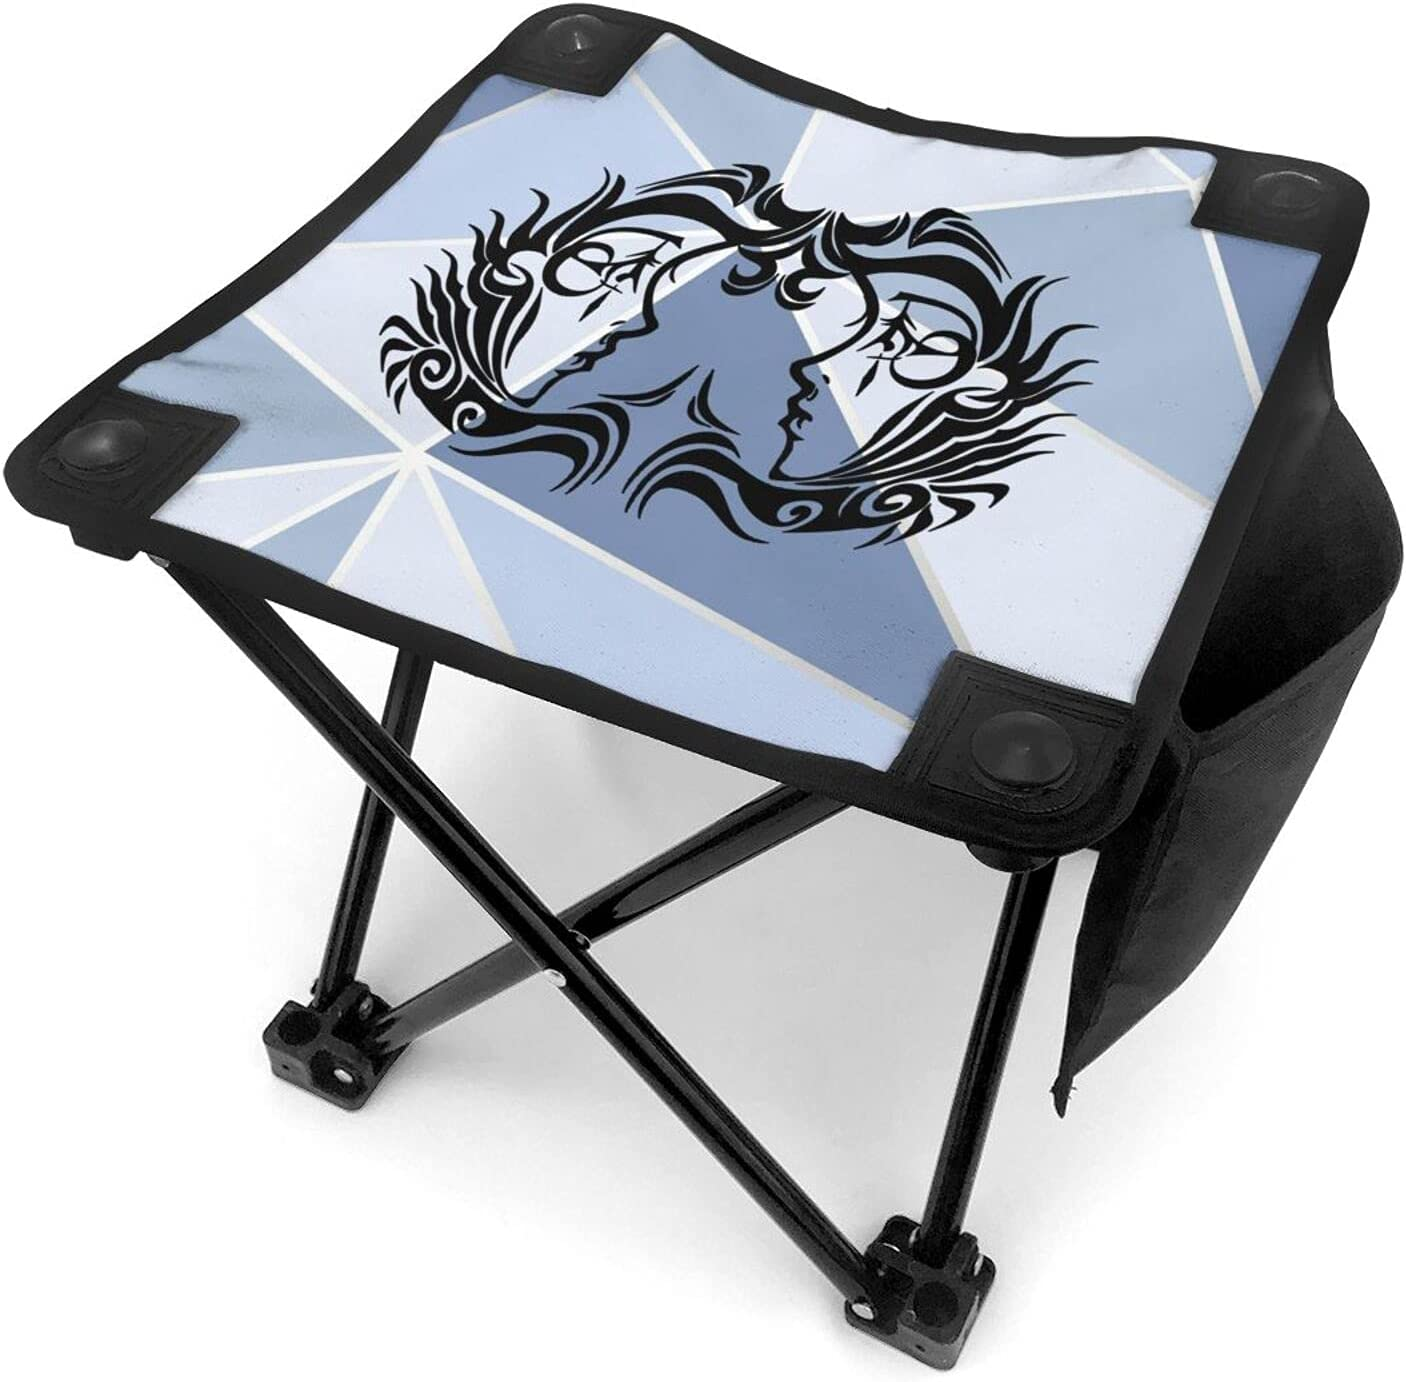 Gemini Camping Stool Ultralight Mini Beauty products Portable Fishing Fold Year-end annual account